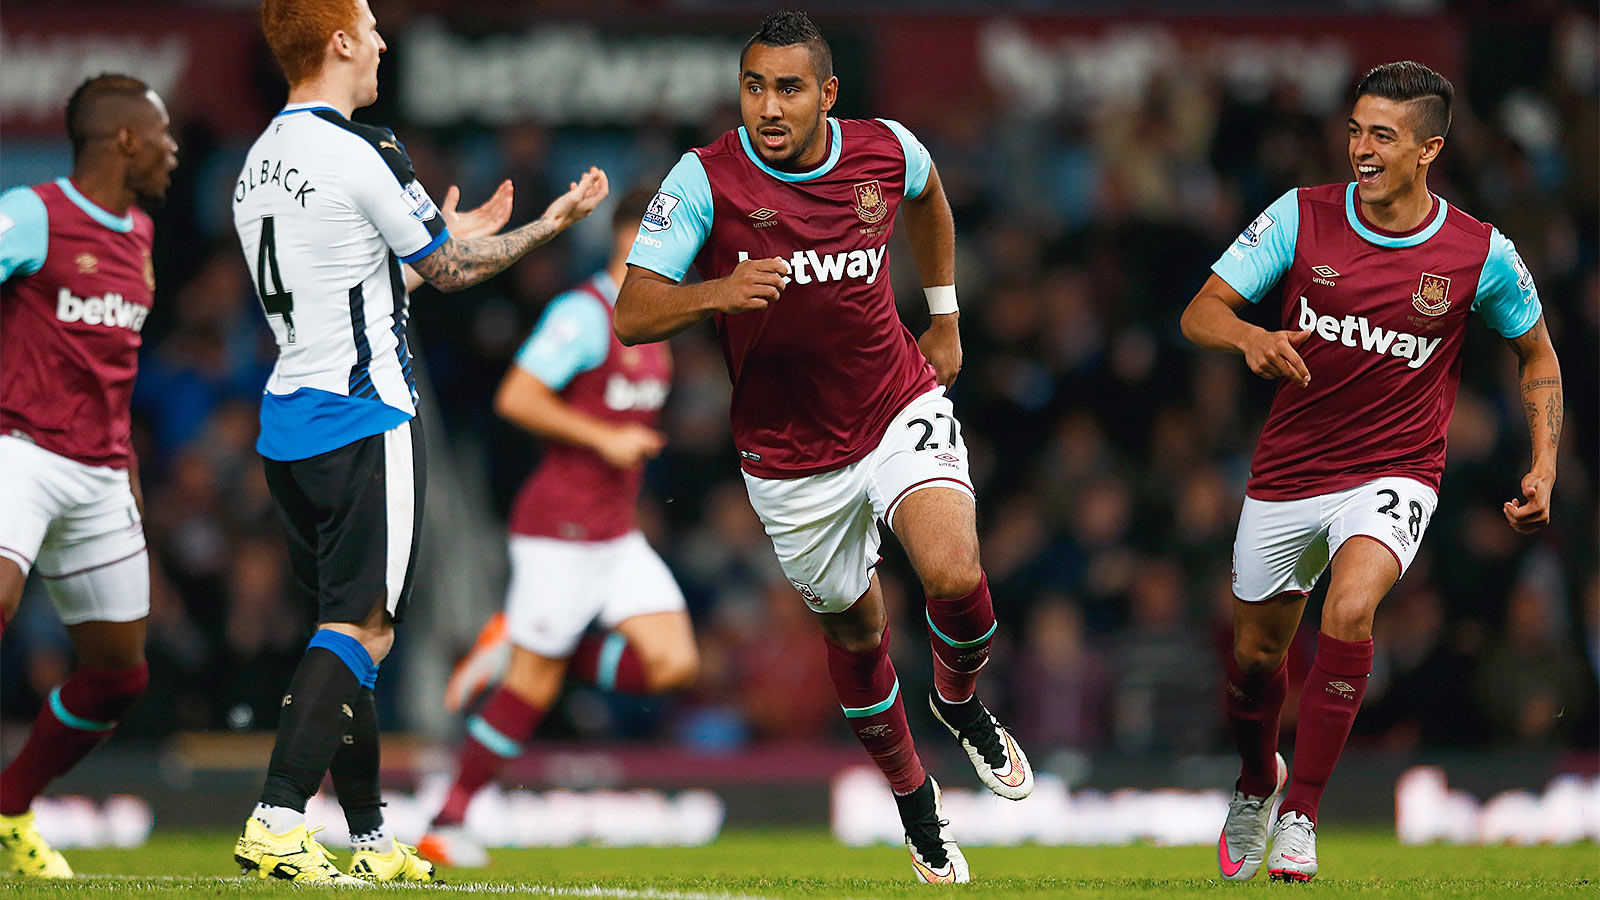 West Ham continue ascent with comfy win over Newcastle